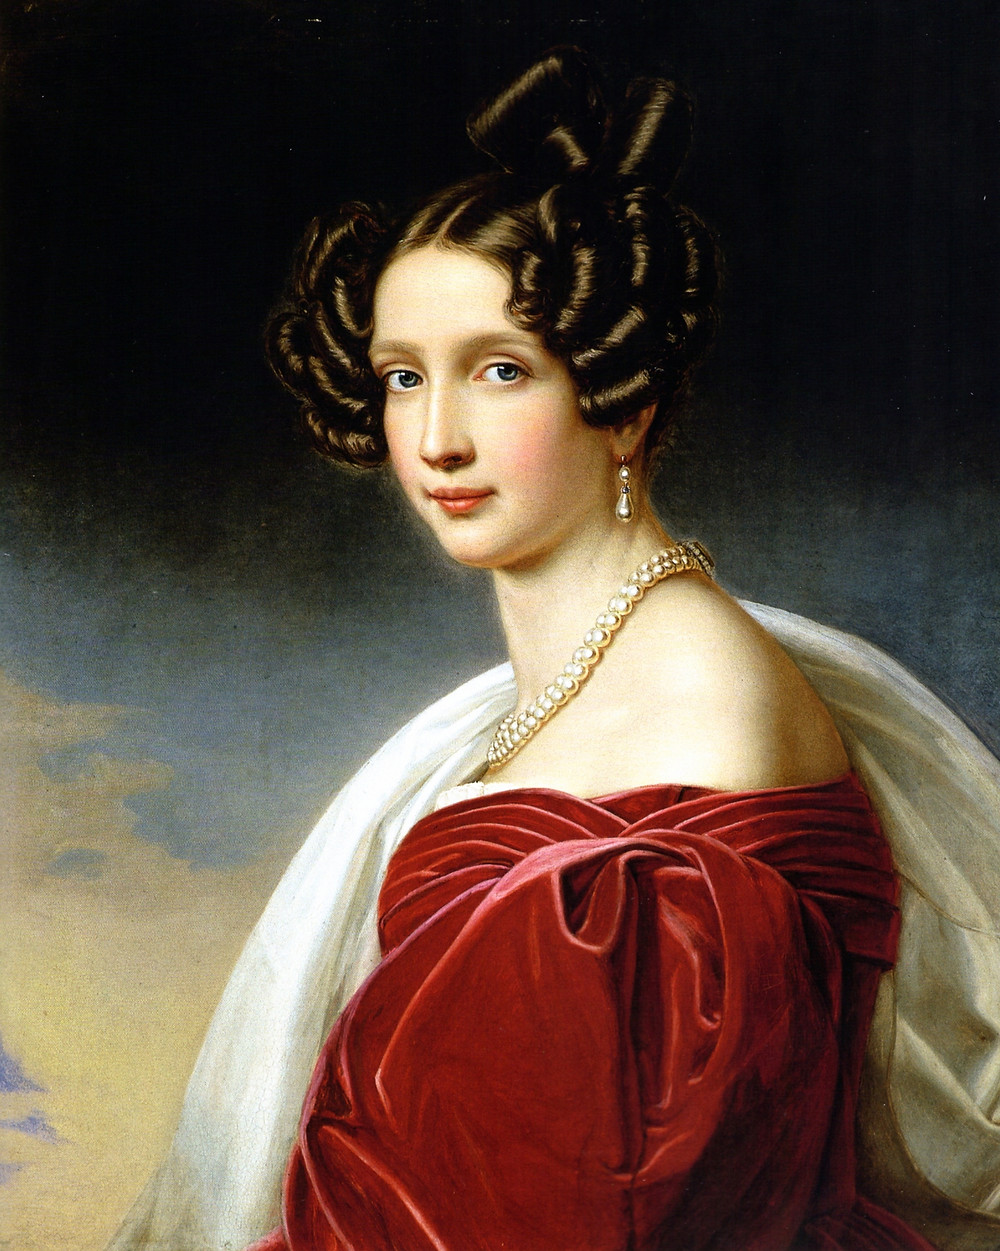 one of the nobles, Sophie, Archduchess of Austria